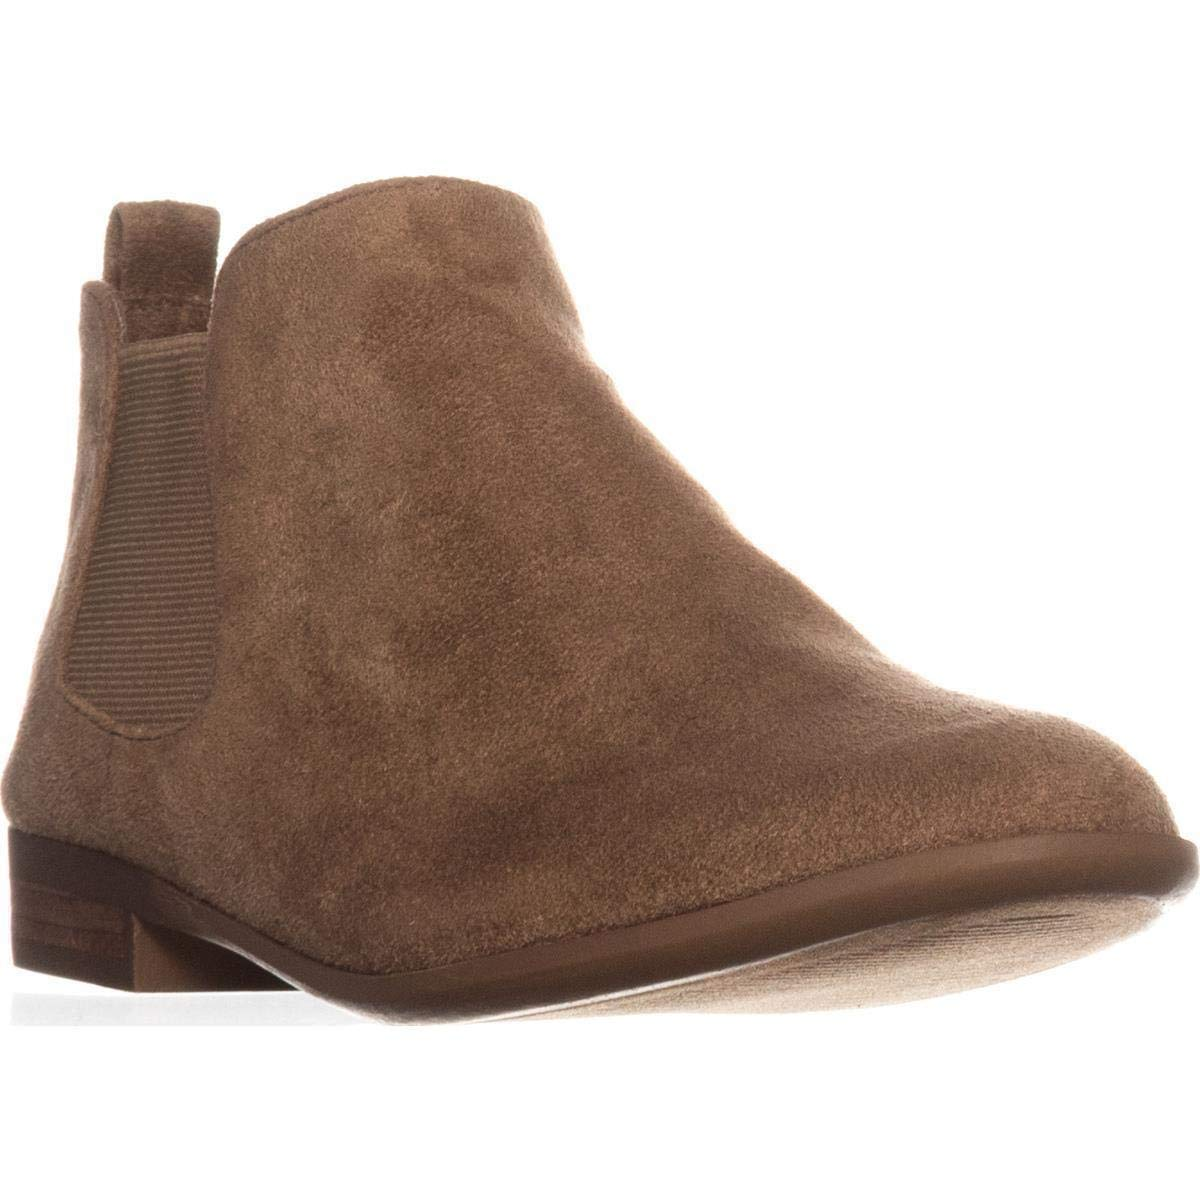 American Rag Womens Stansie Closed Toe Ankle Fashion Boots